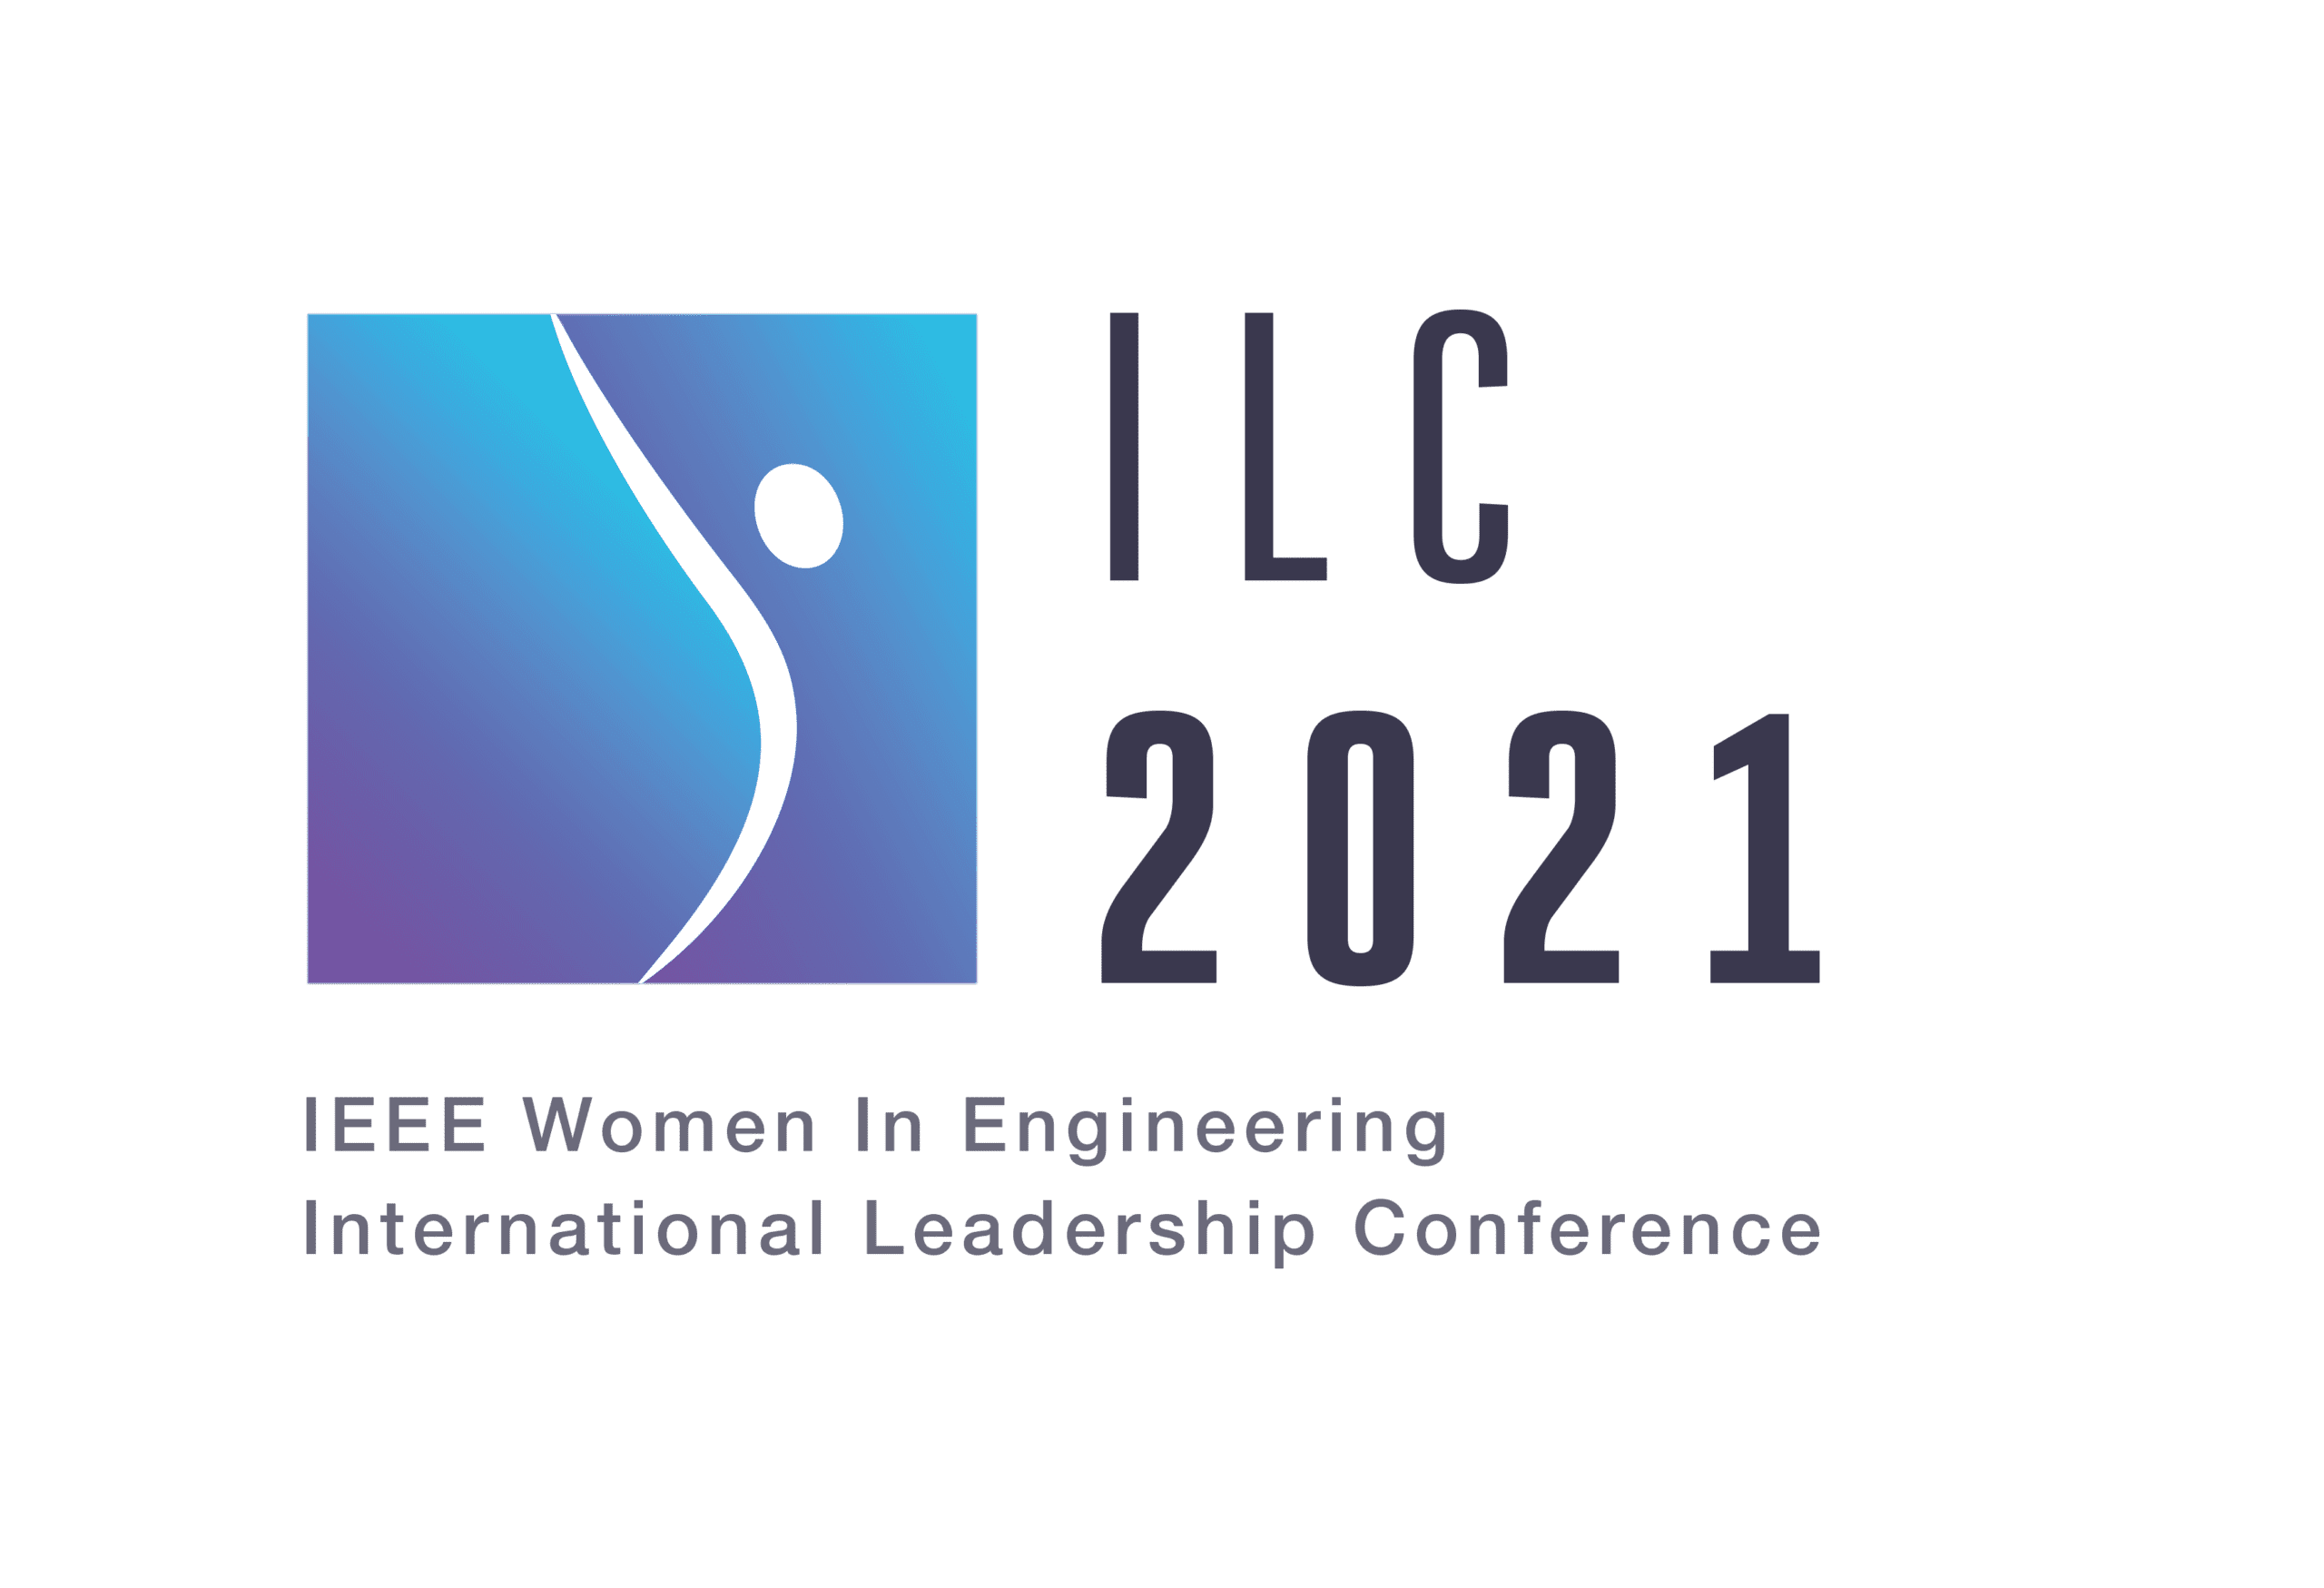 IEEE Women in Engineering International Leadership Conference